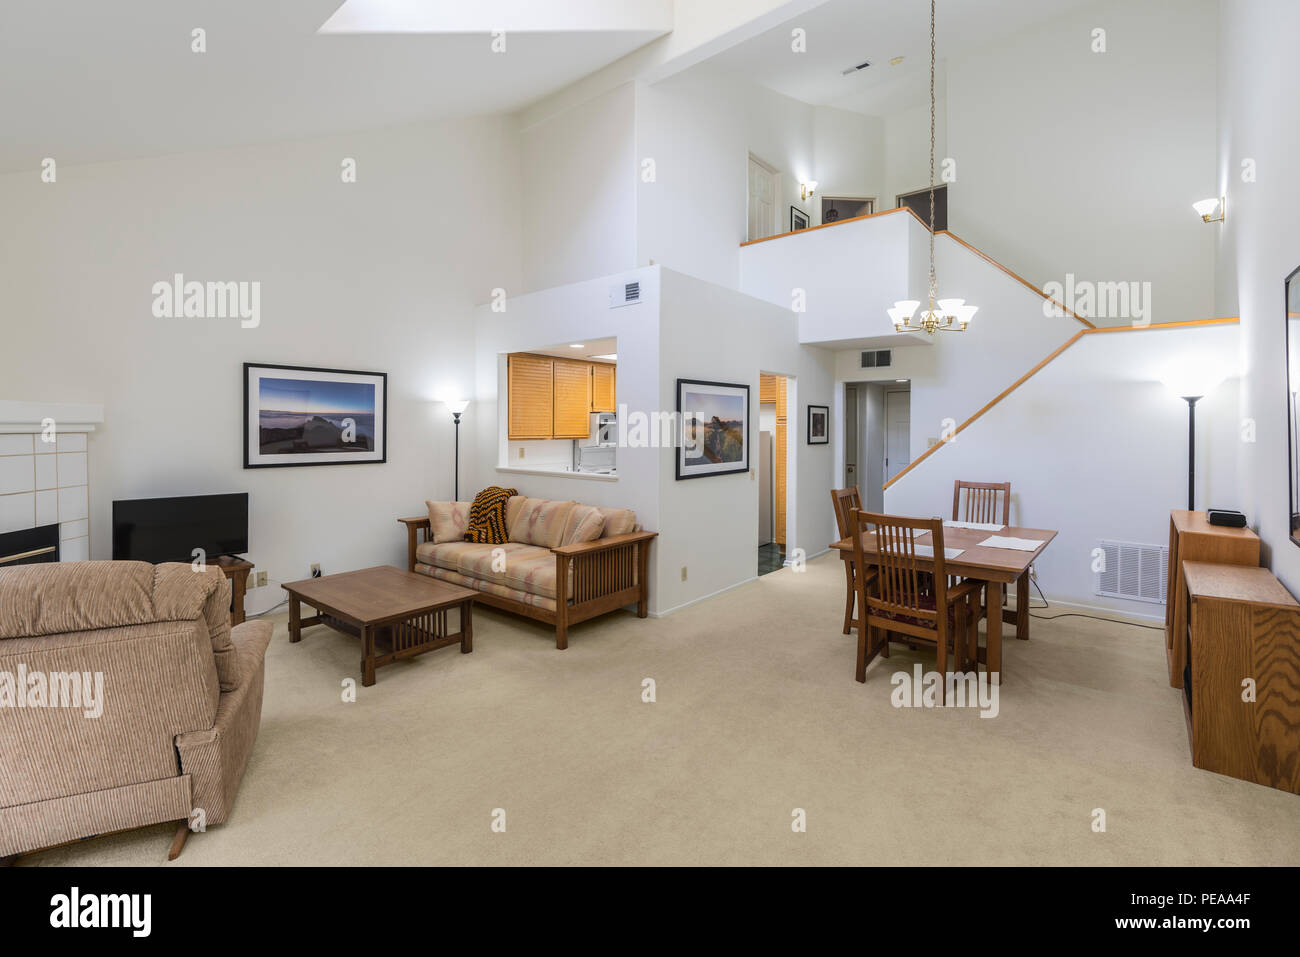 framed wall art for living room best setup high ceiling condo is the photographers work and included in release